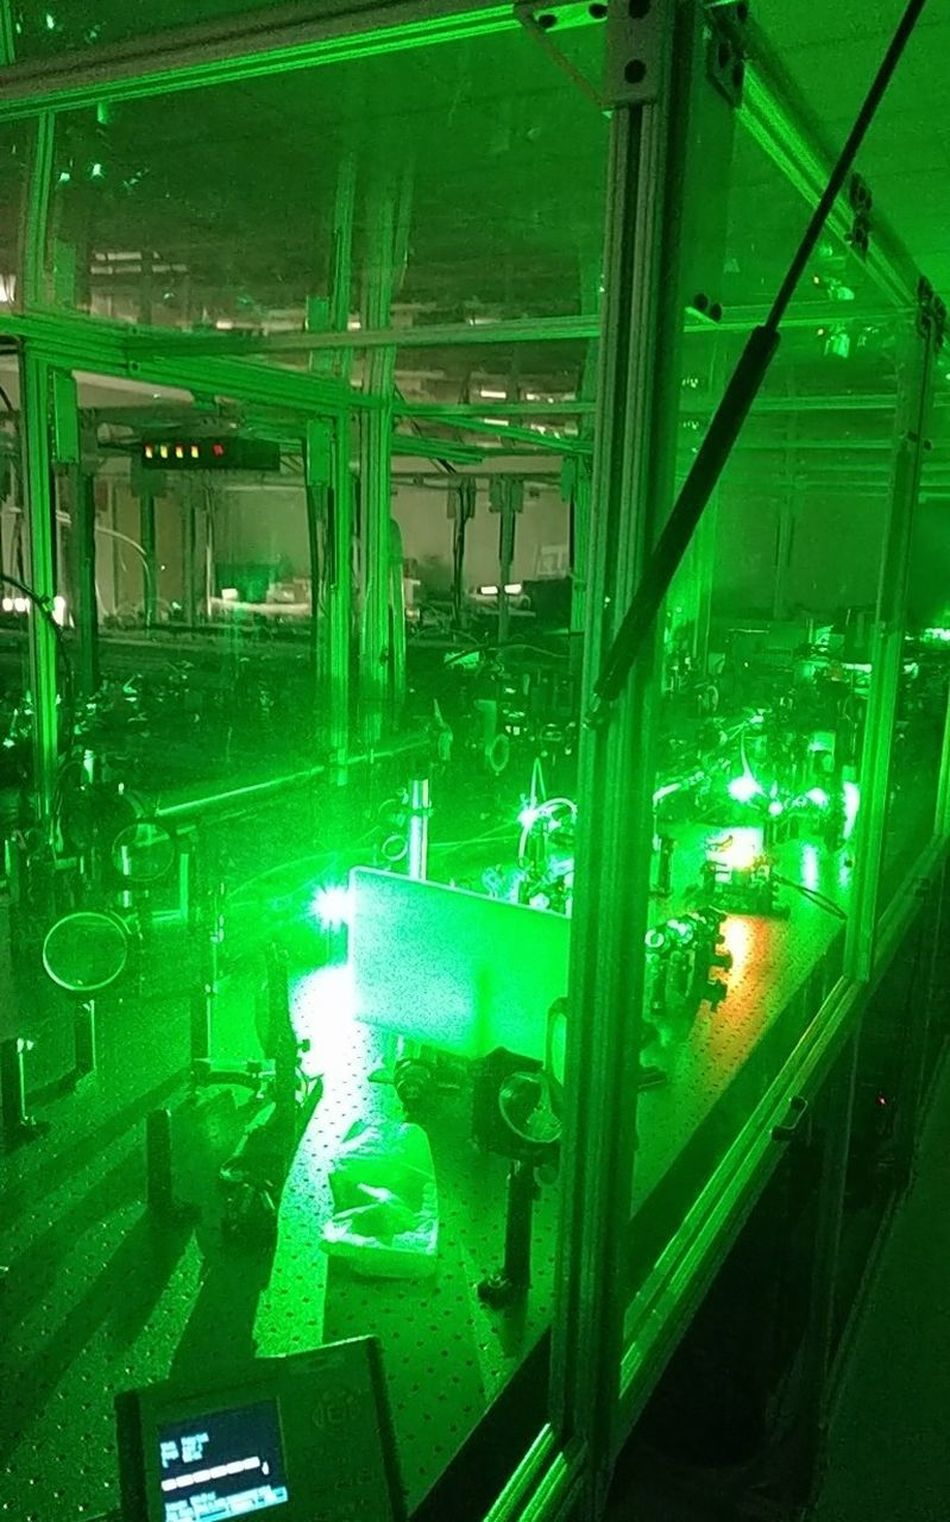 Laser Laserbeam University Campus University Lab Laser Lab Scientist Technology Big Laser Lab